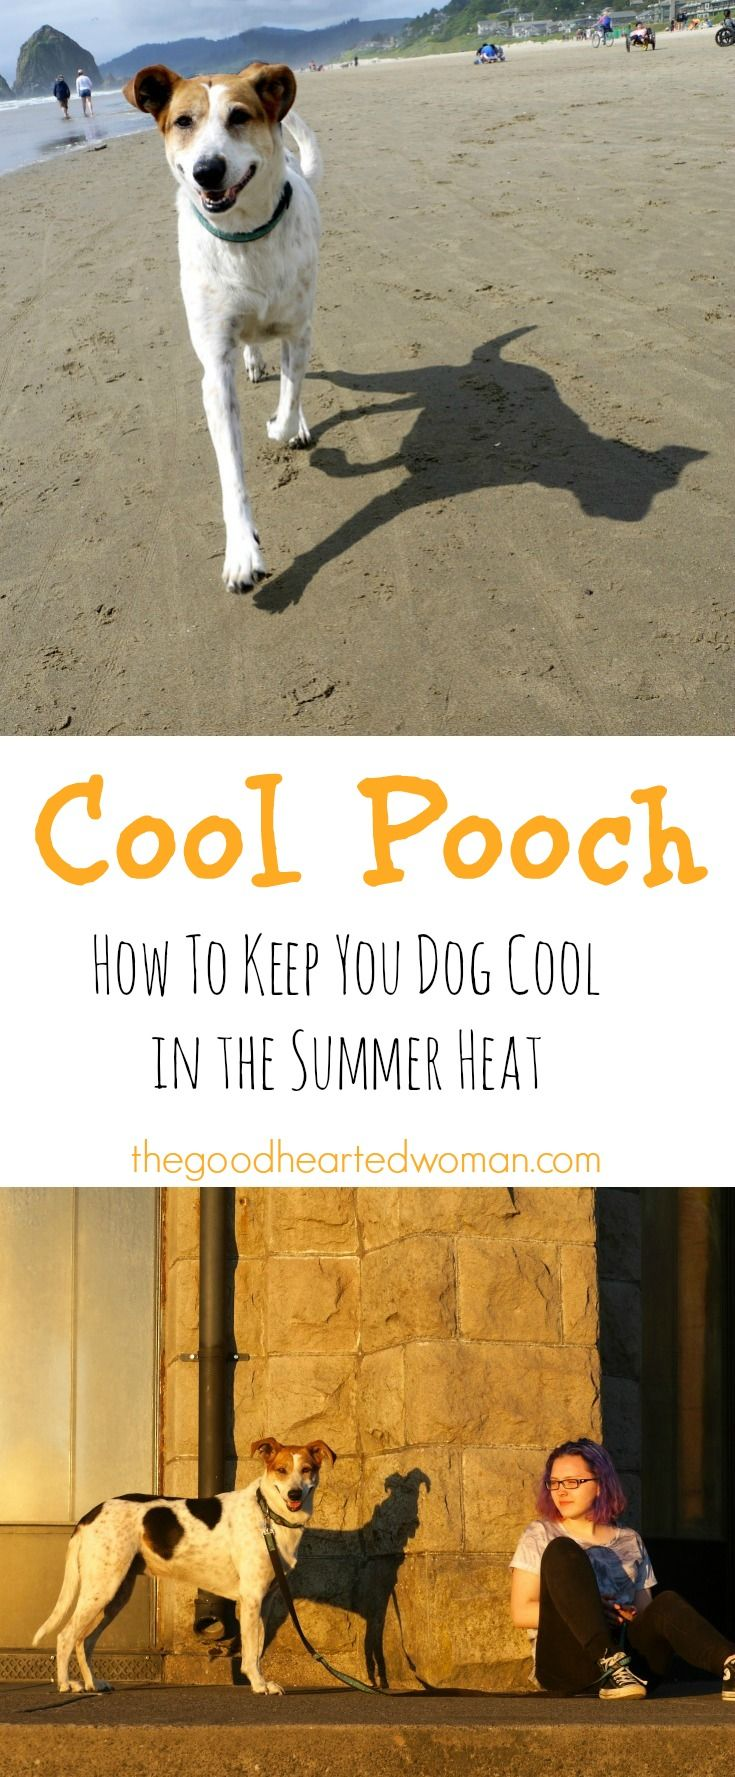 Cool Pooch: Tips for Keeping Your Dog Cool in the Summer | The Good Hearted Woman